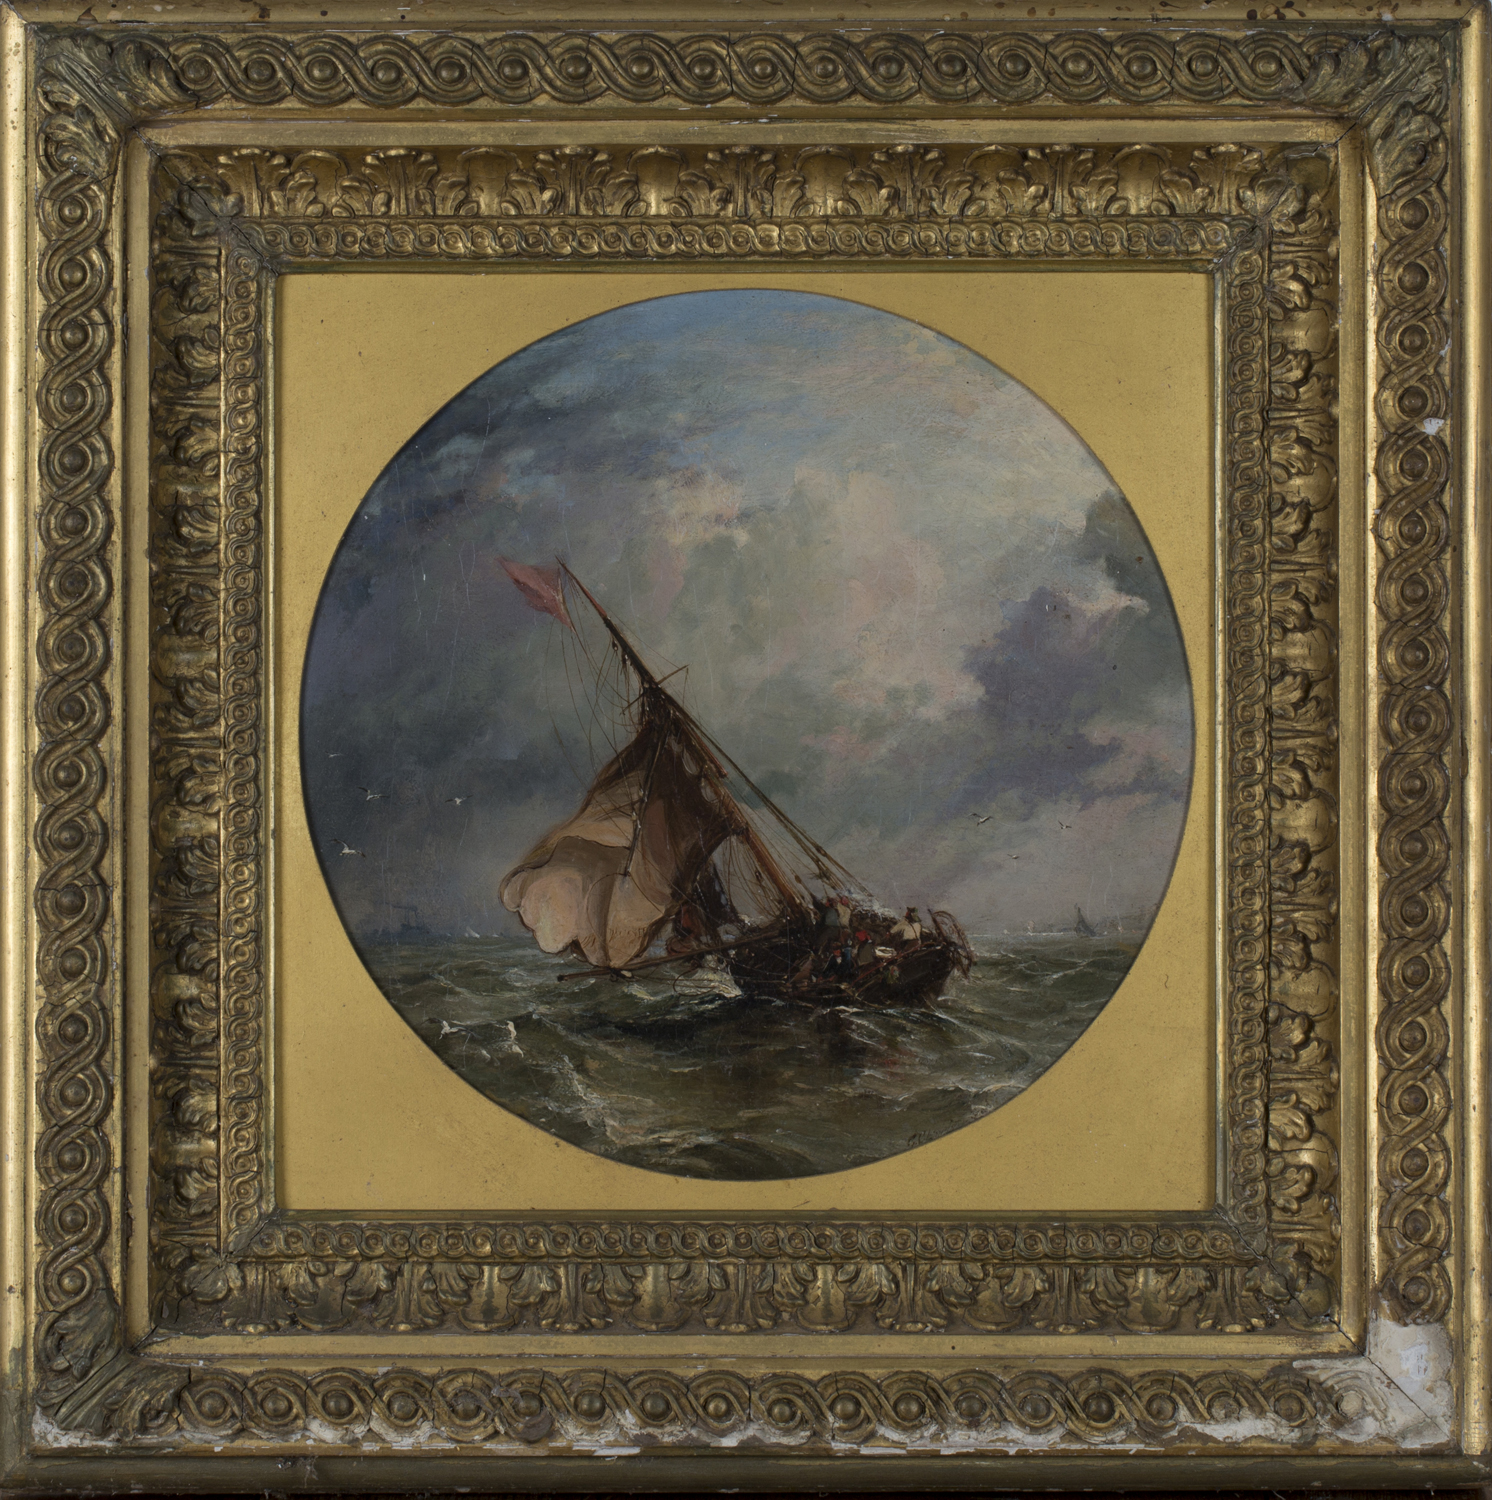 Lot 47 - Circle of George Chambers - Tondo Seascape with Sailing Vessels in a Stiff Breeze, 19th century